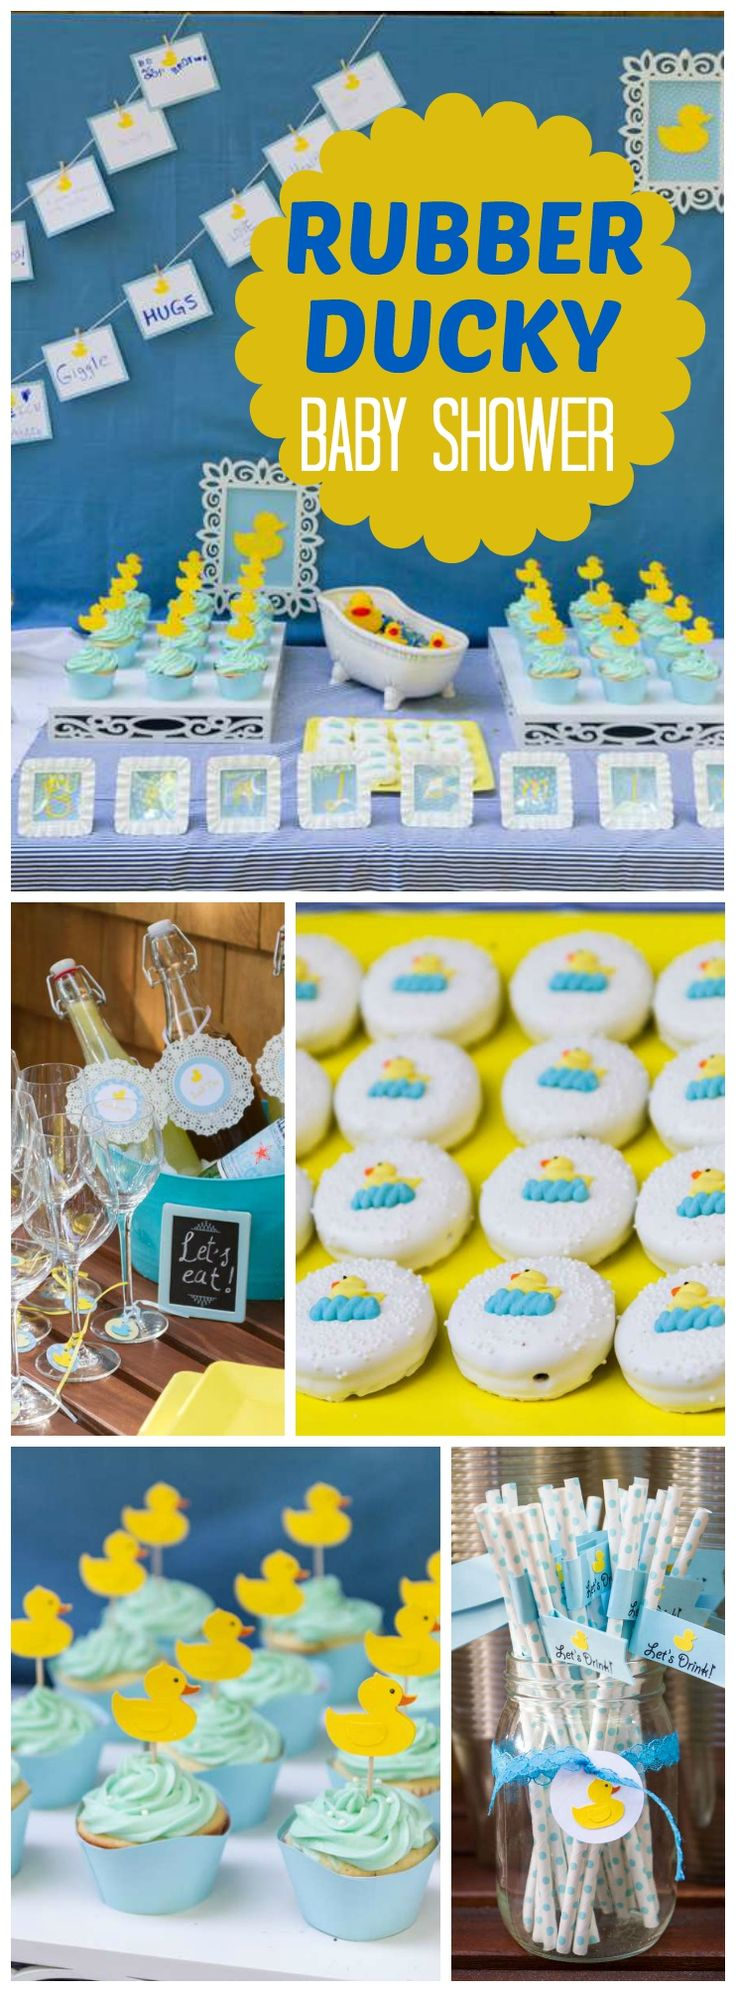 5123 best images about party ideas on pinterest party for Rubber ducky bathroom ideas